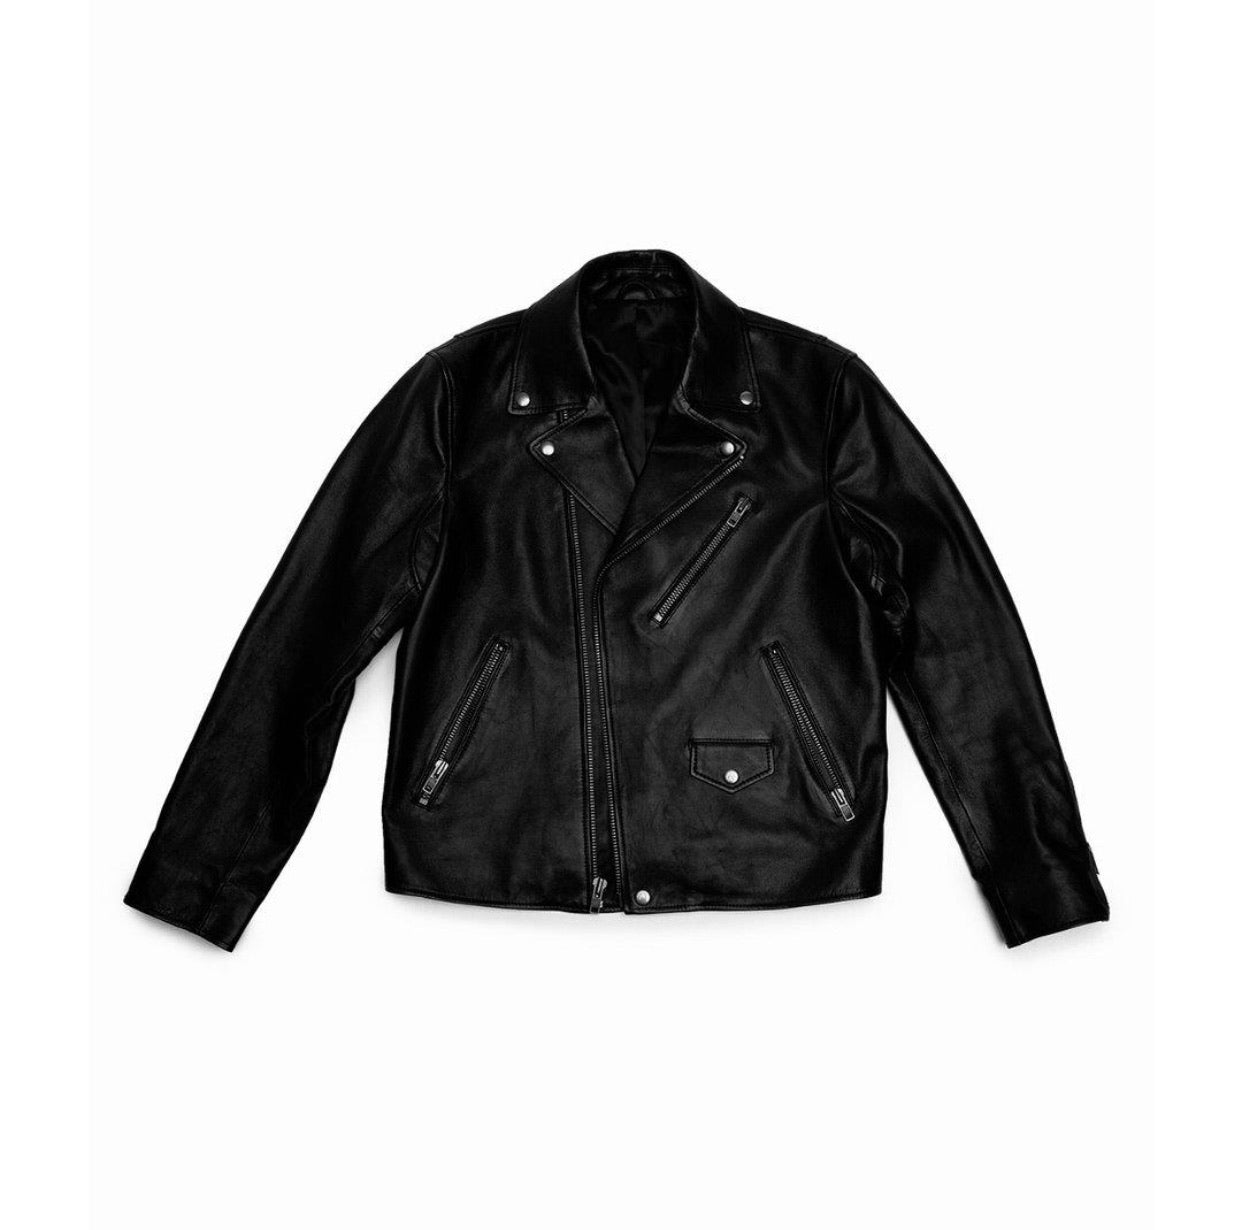 The Night Ride Leather Jacket - Up to Size 4XL